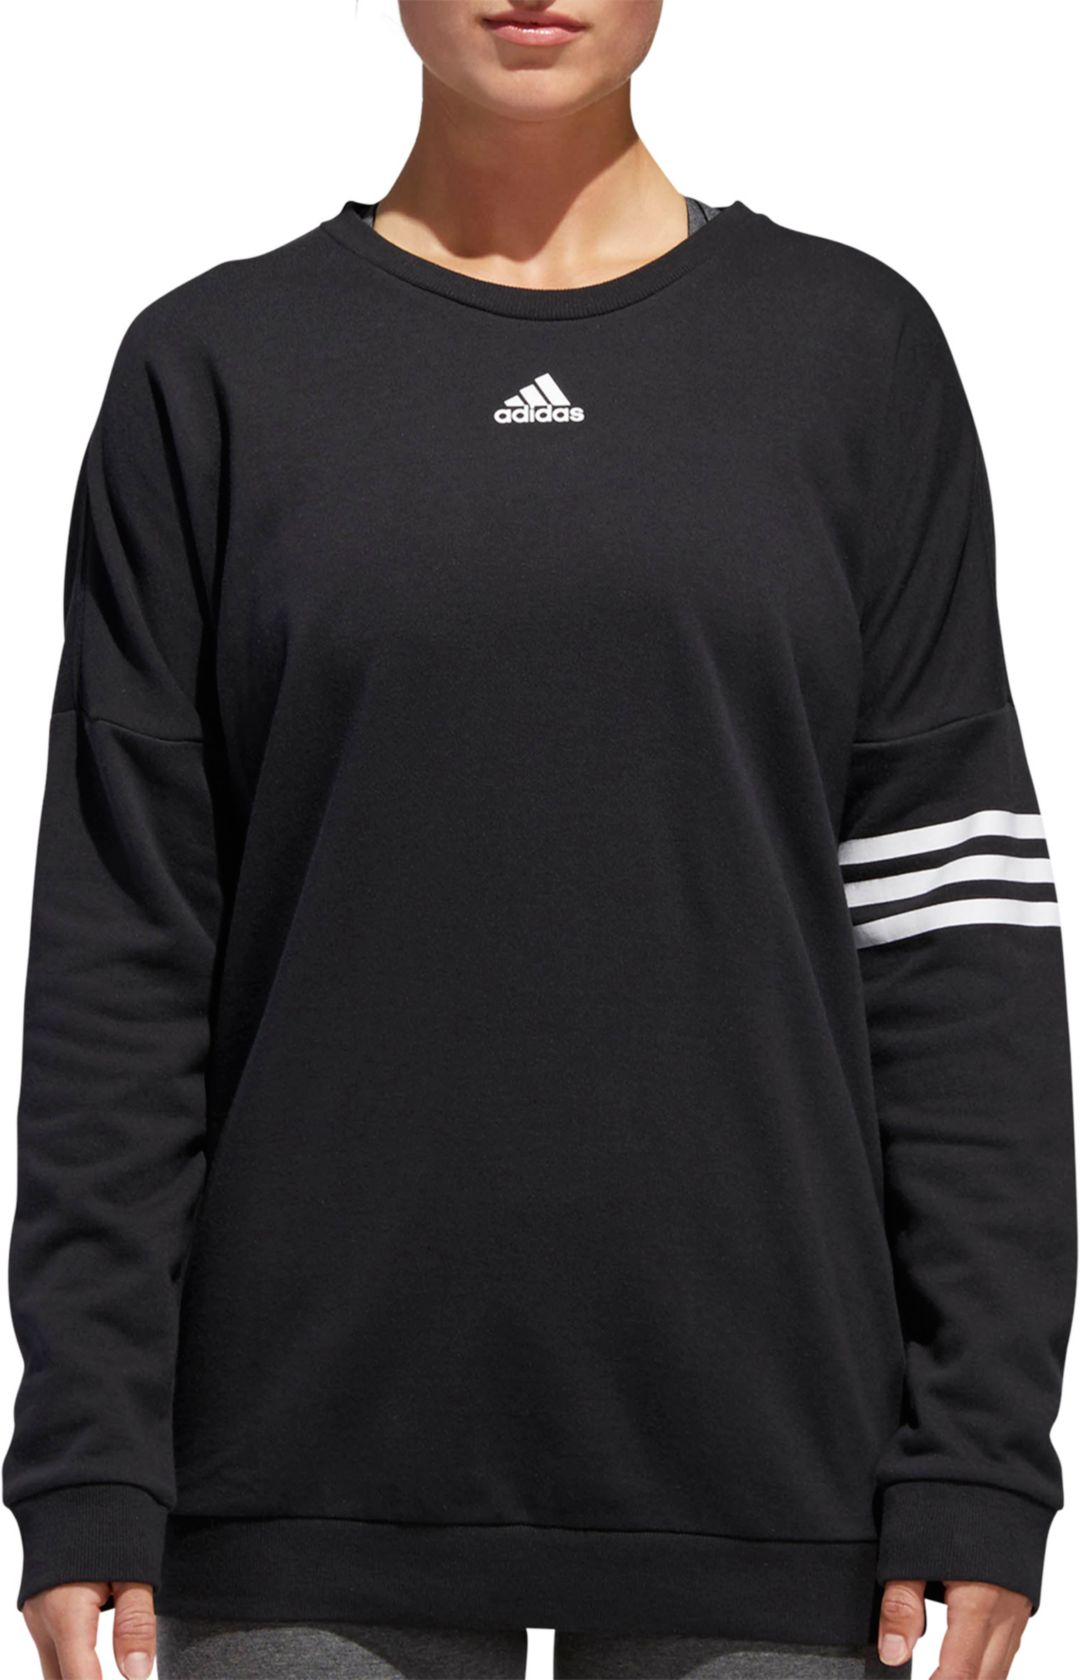 check out 23eb1 73db4 adidas Women's Athletics French Terry Crewneck Pullover